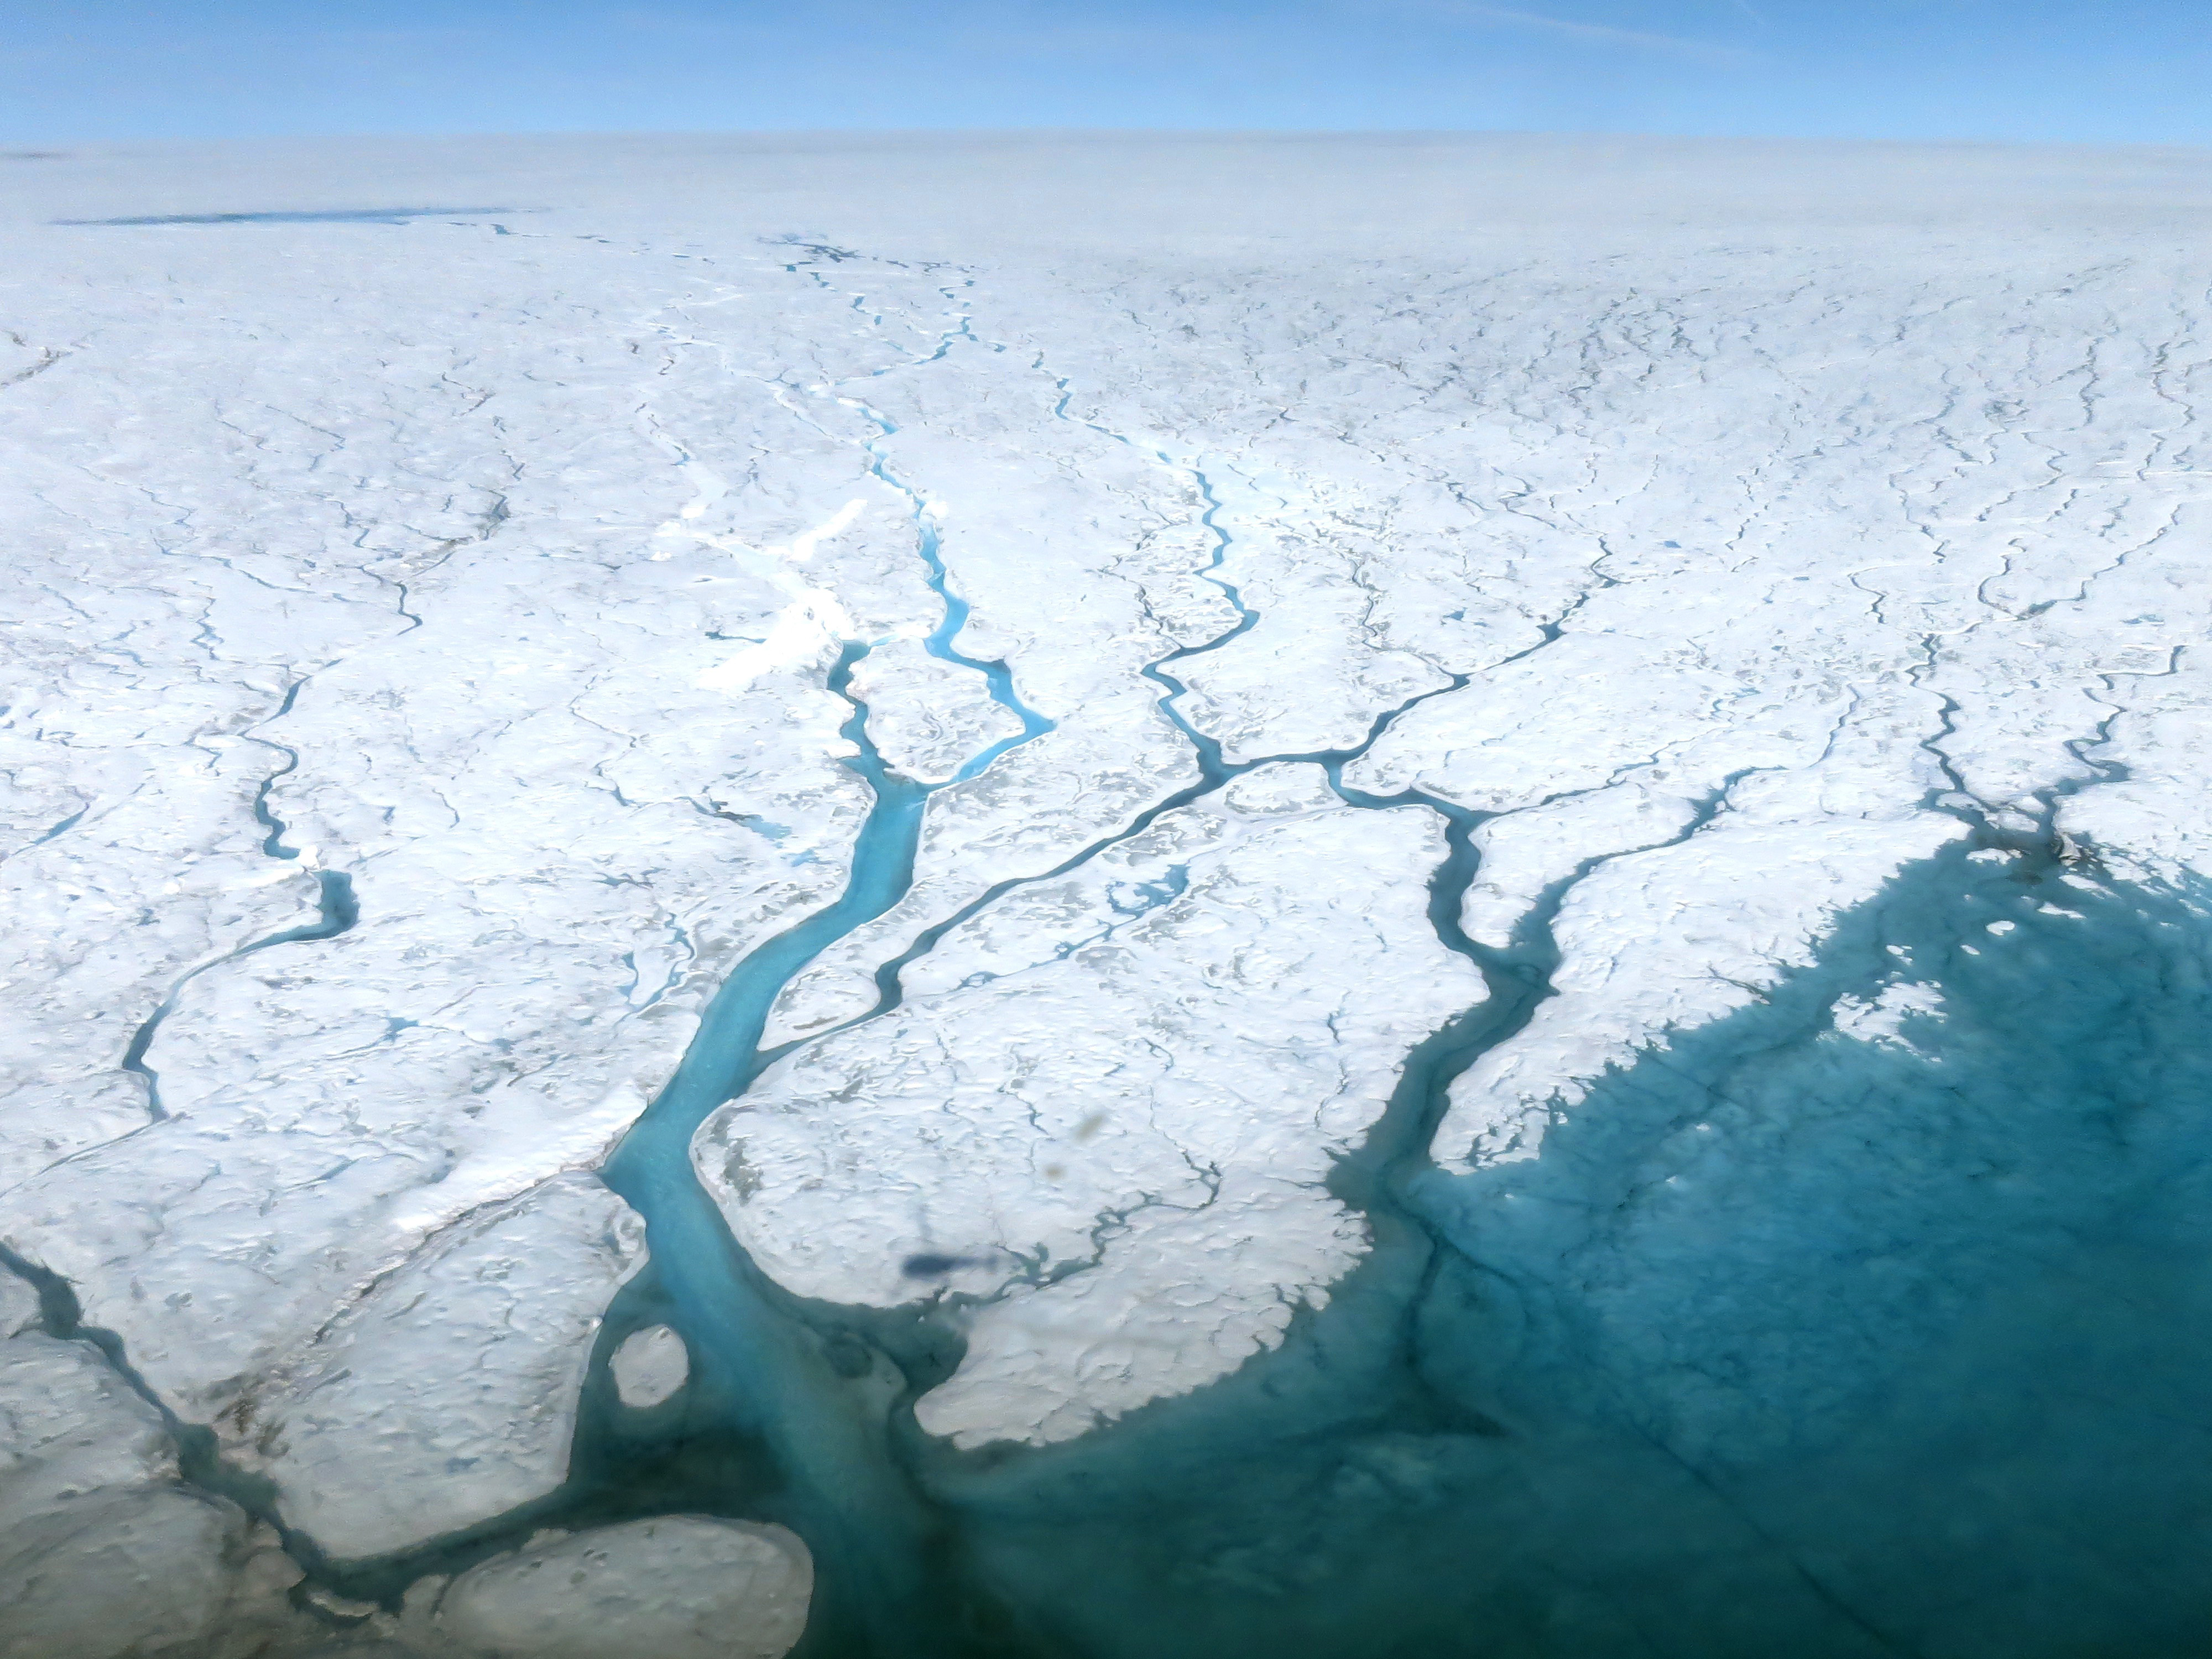 map of earth if ice caps melt with View on 4 further Ice Canyon Greenland furthermore Map Reveals Global Warming May Result In Submerging Of Large Portions Of Earth as well View together with P25.